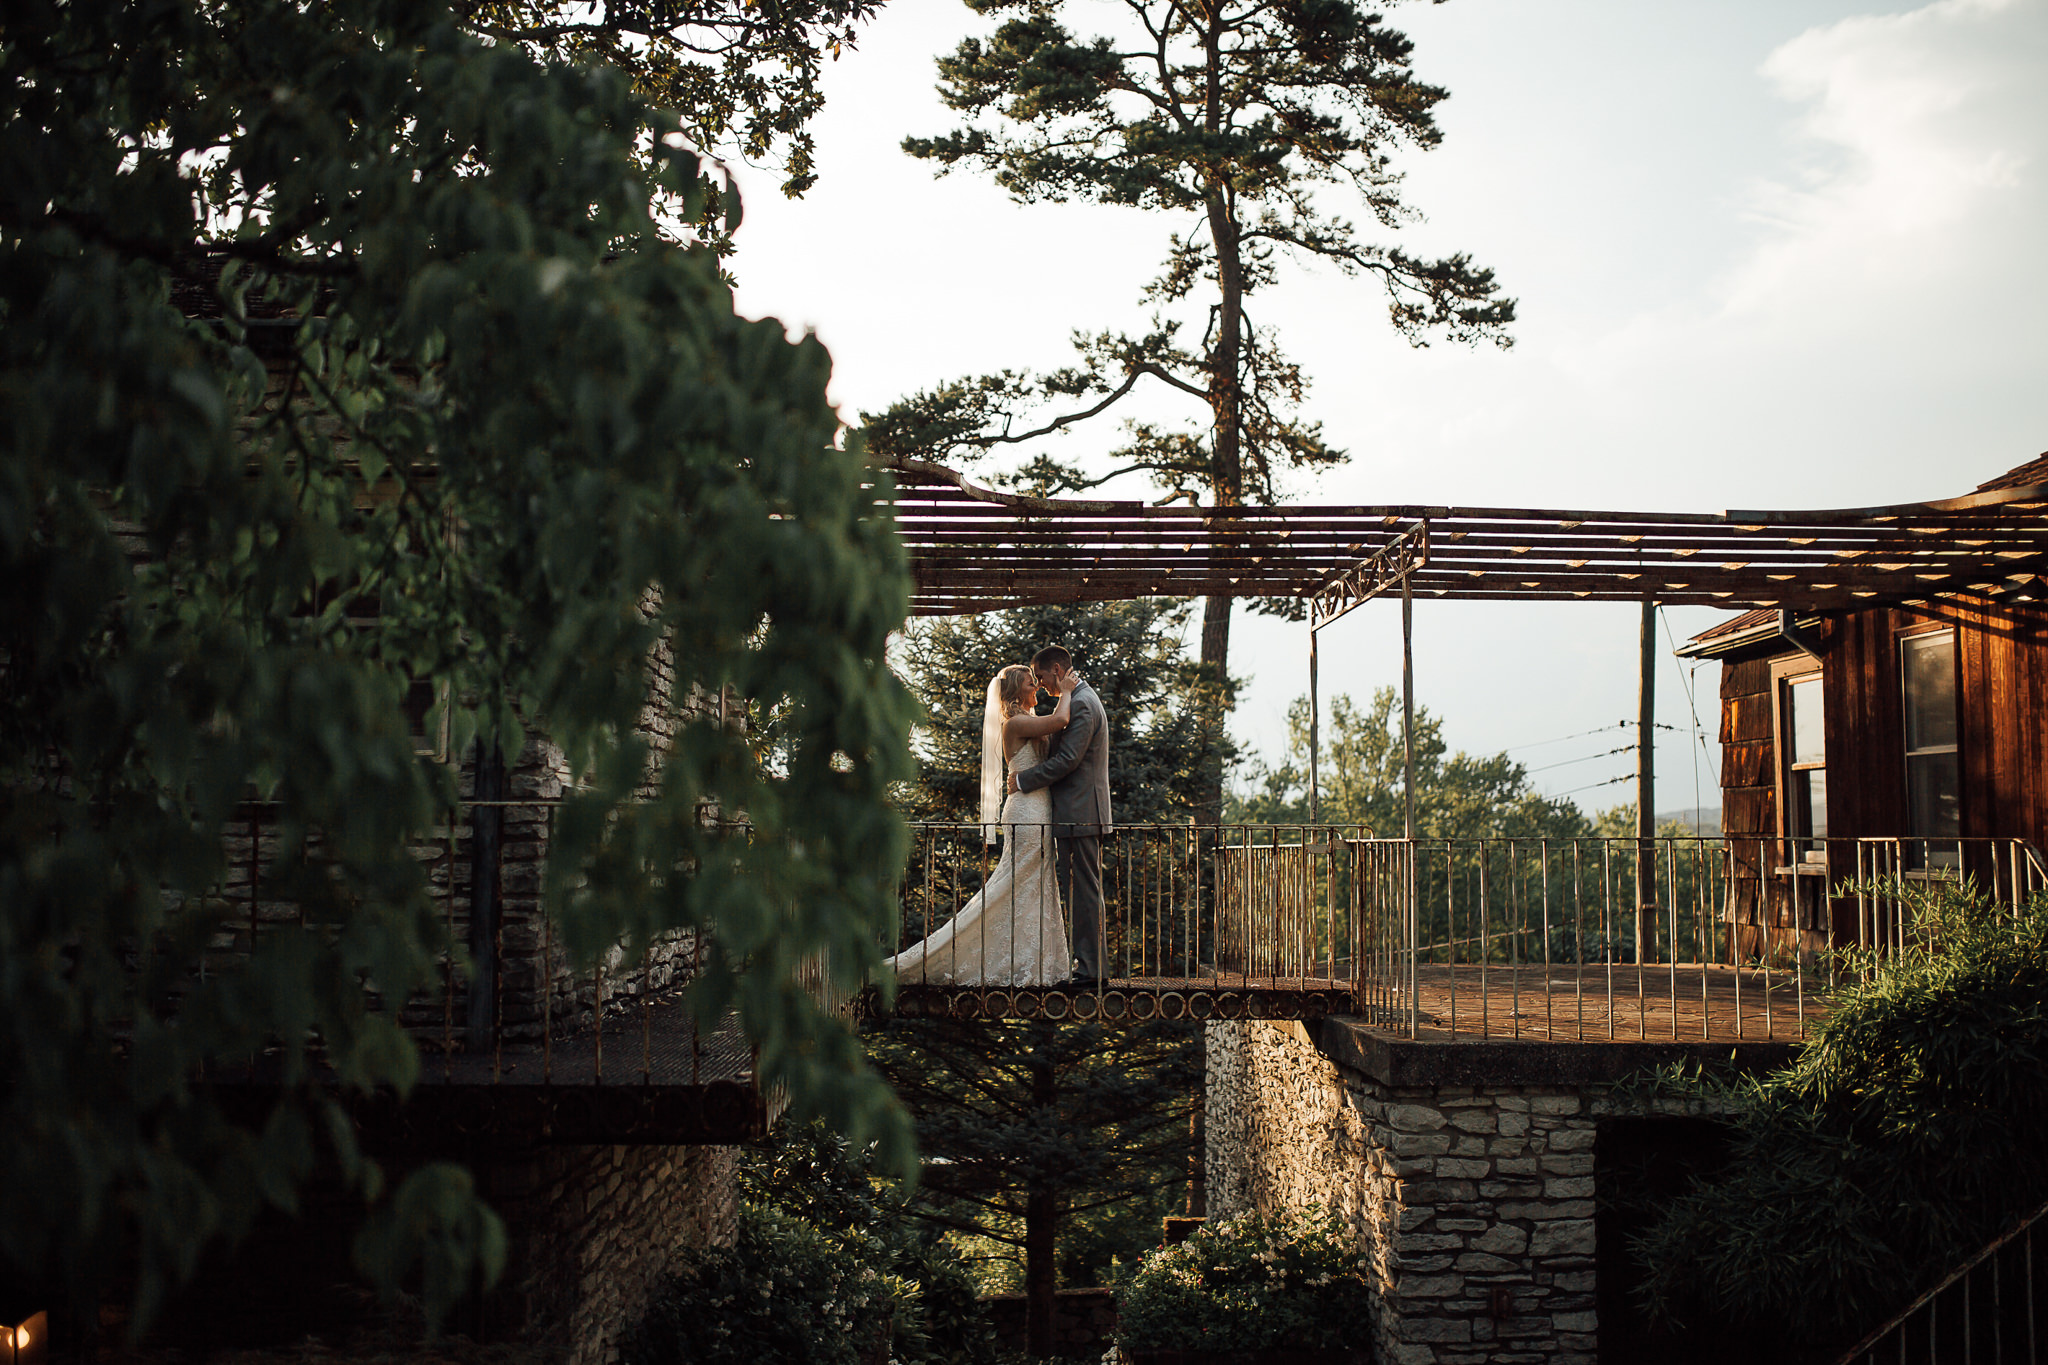 memphis-wedding-photographers-the-warmth-around-you-cassie-cook-photography-25.jpg